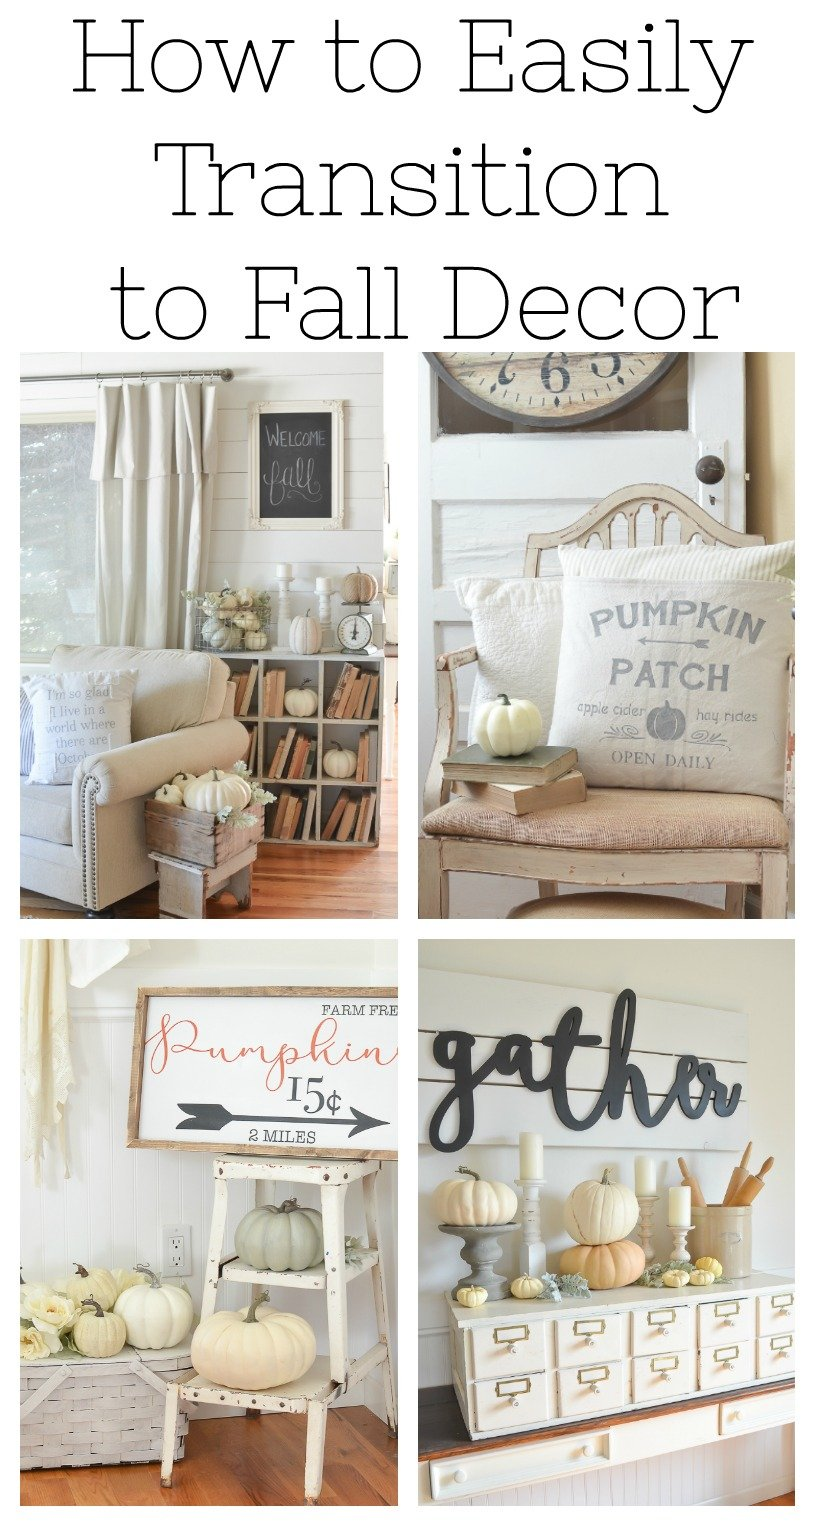 How to Easily Transition to Fall Decor